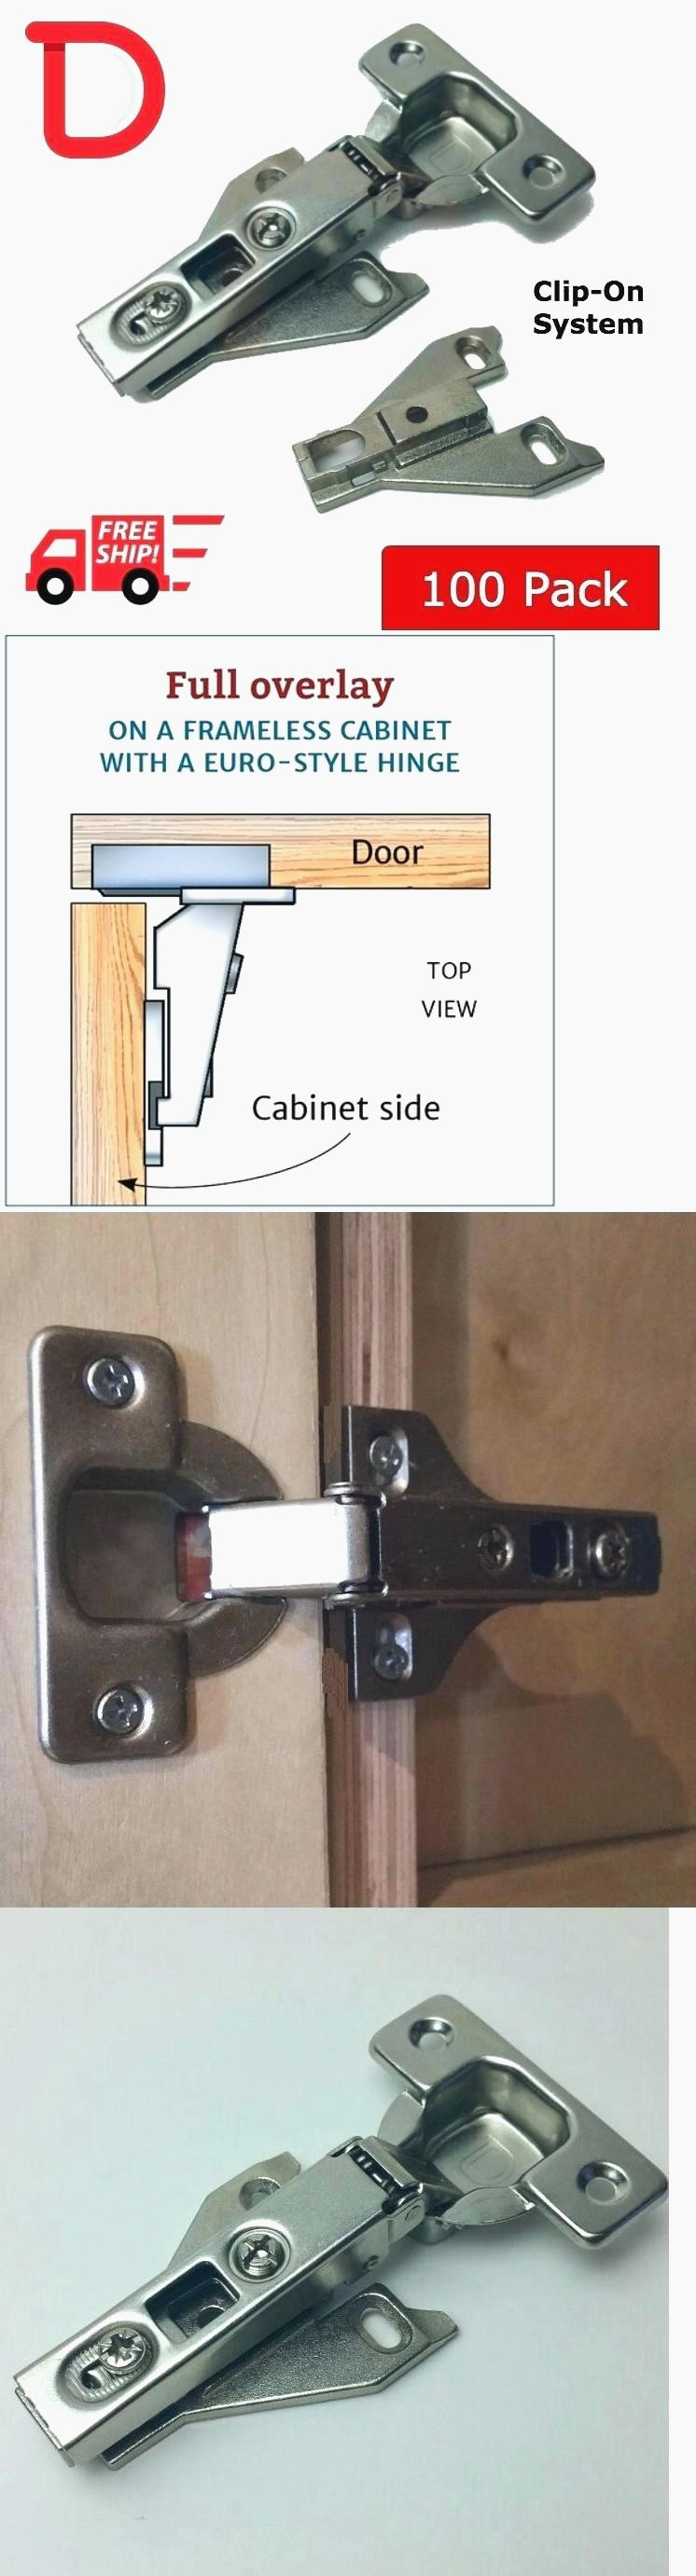 how to install new hinges on old cabinet doors how to adjust lazy susan cabinet door how to adjust old cabinet door hinges how to adjust ferrari hinges how to adjust european cabinet hinges